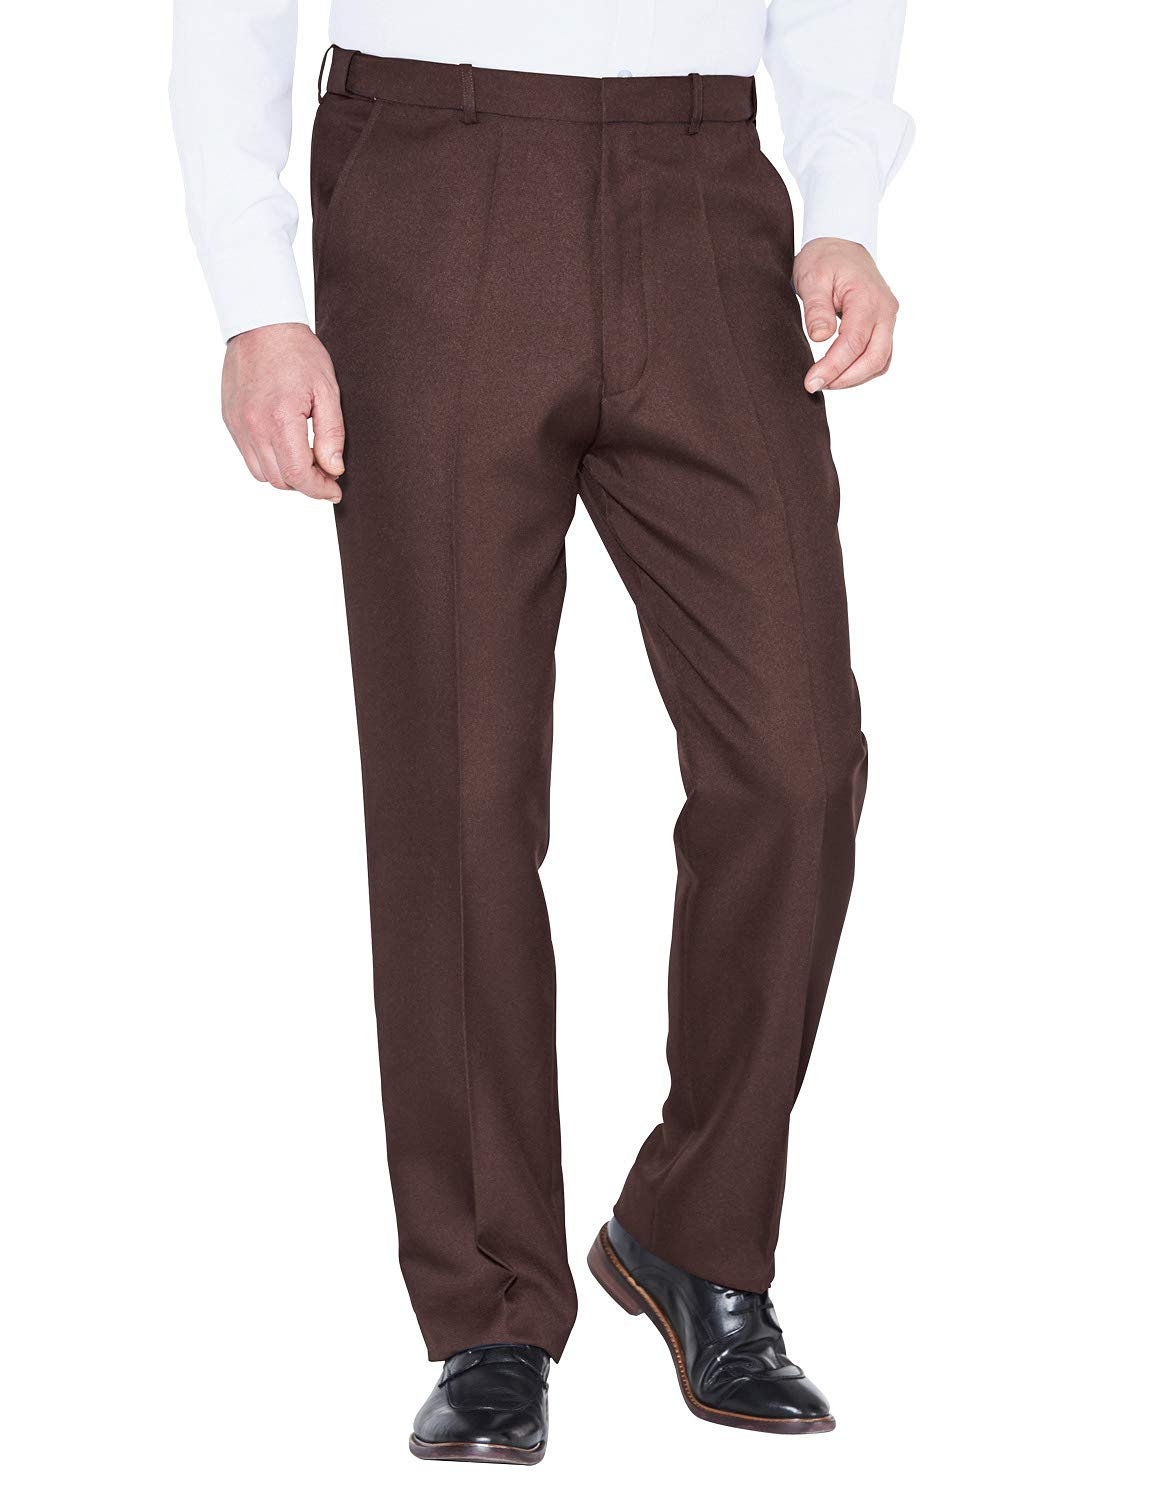 Chums Mens Stretch Waist Formal Smart Work Trousers